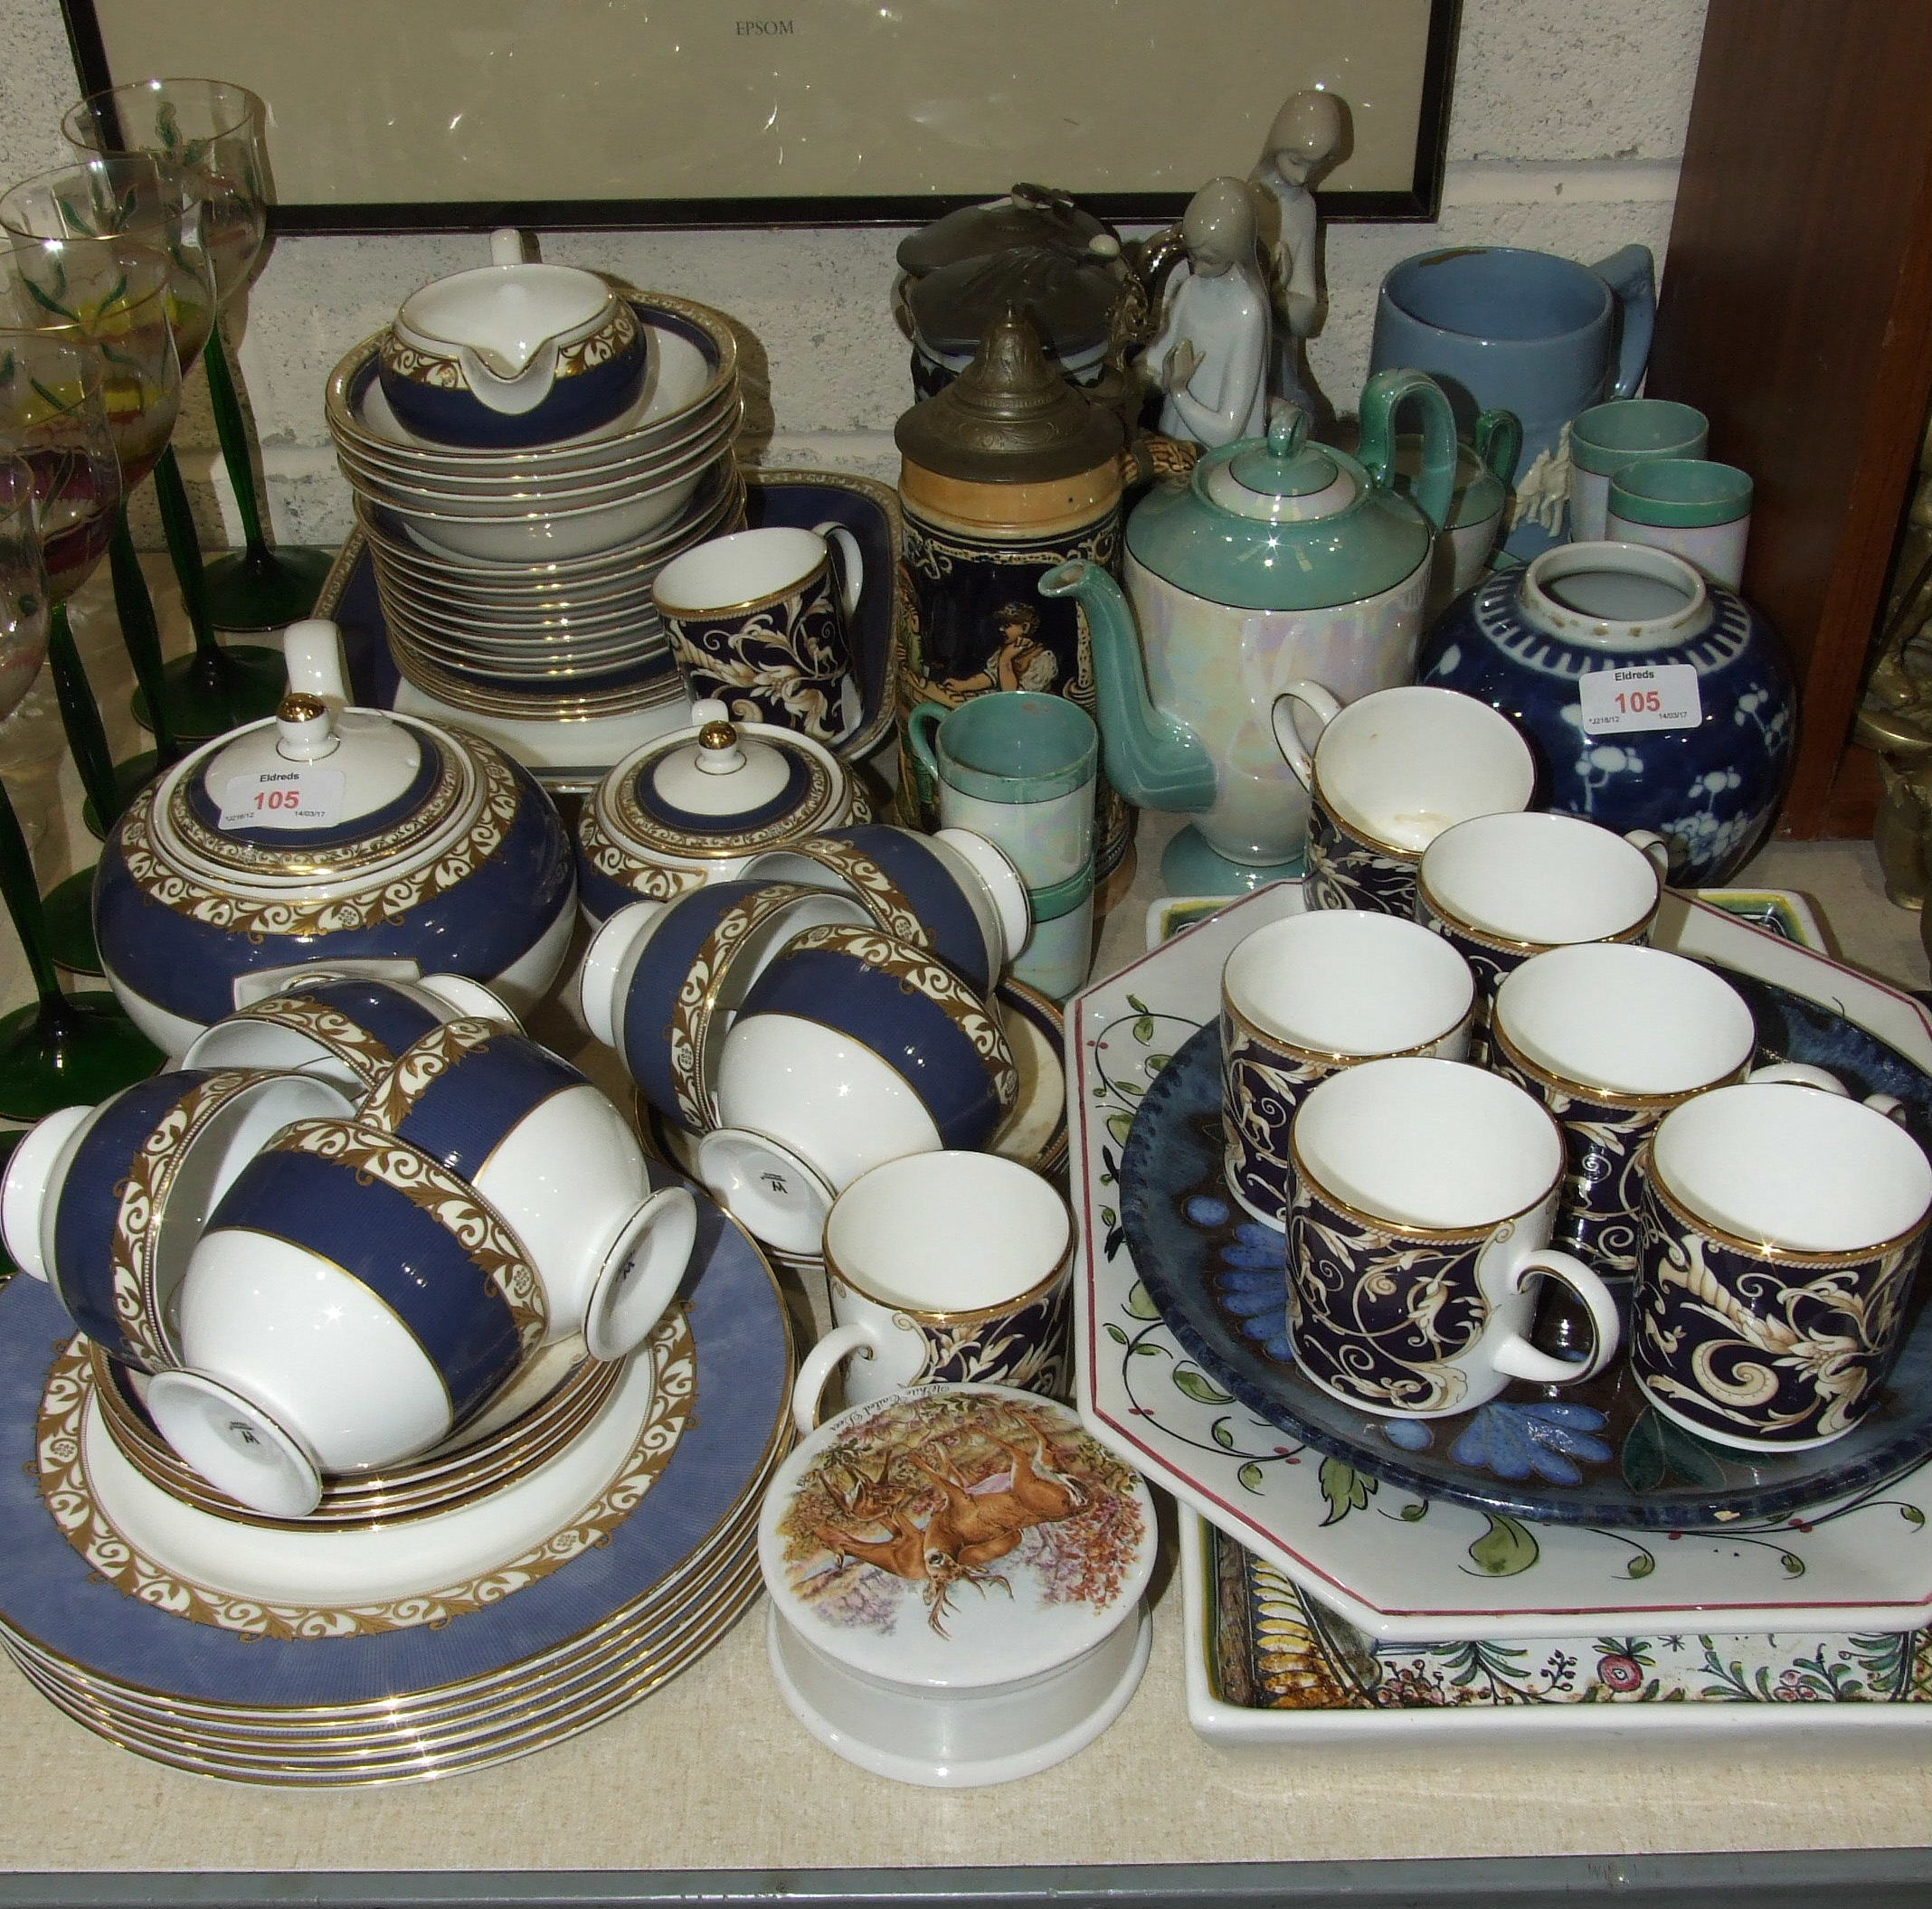 """Lot 105 - Thirty-eight pieces of Wedgwood """"Rococo"""" decorated tea ware and other ceramics."""